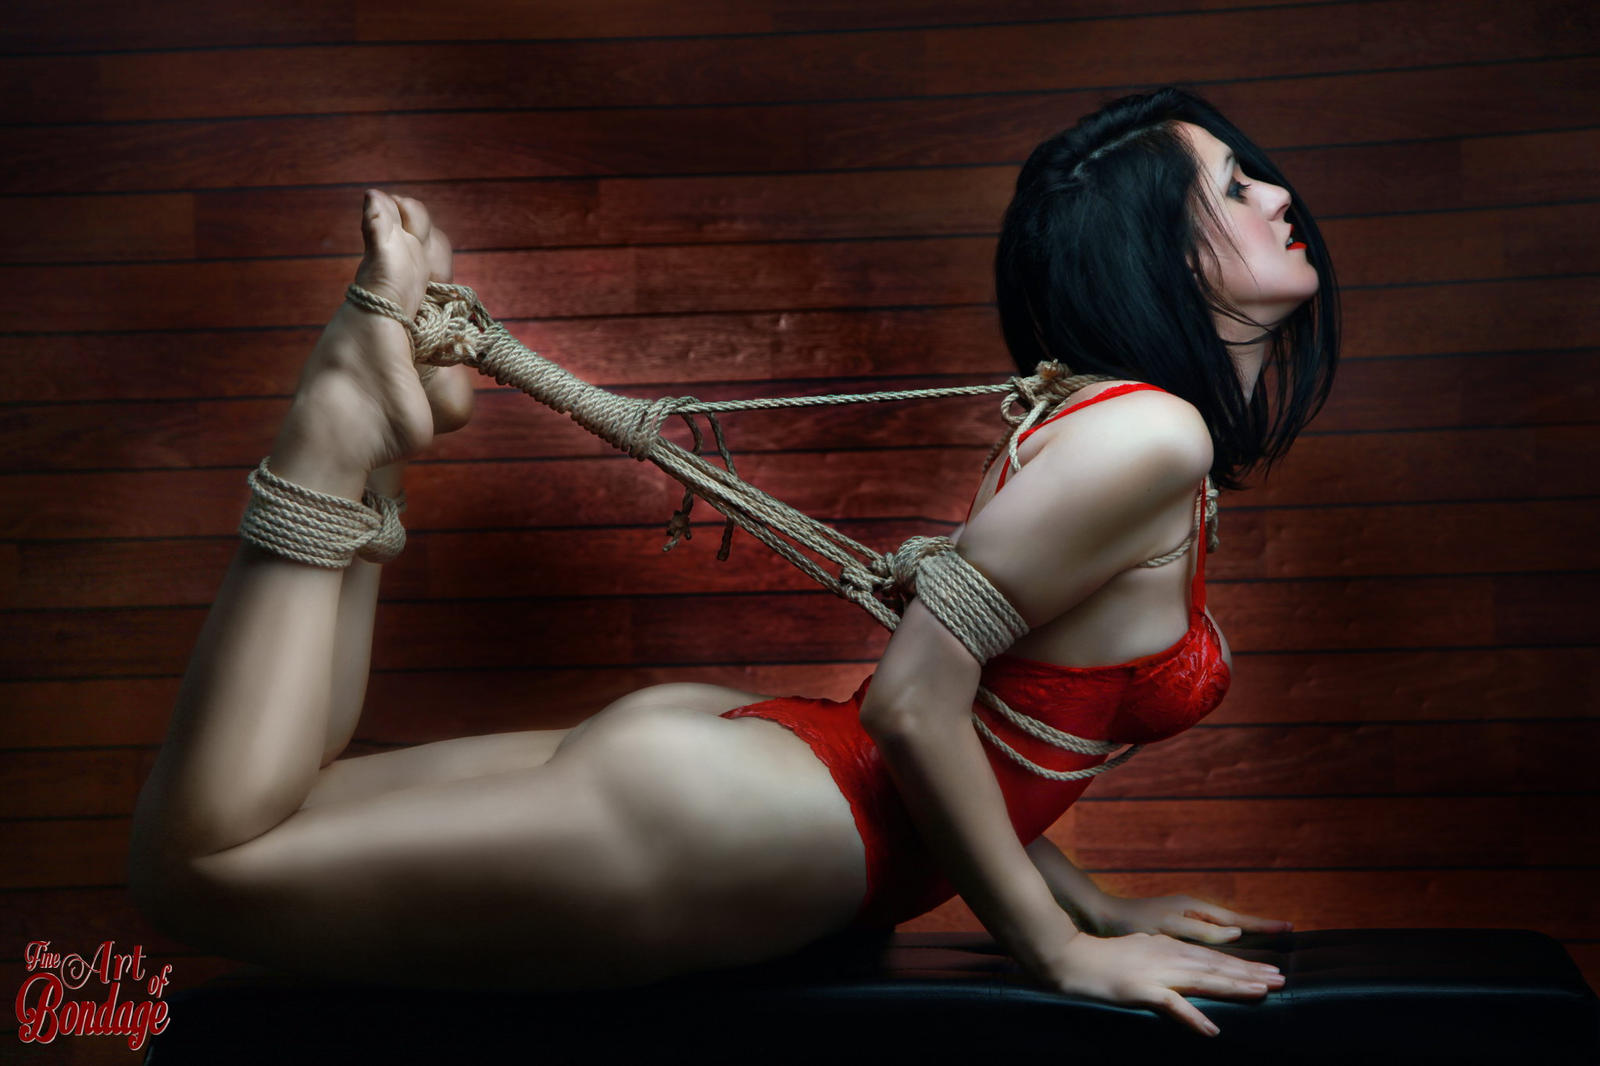 swingerclub senioren bdsm bondage chair